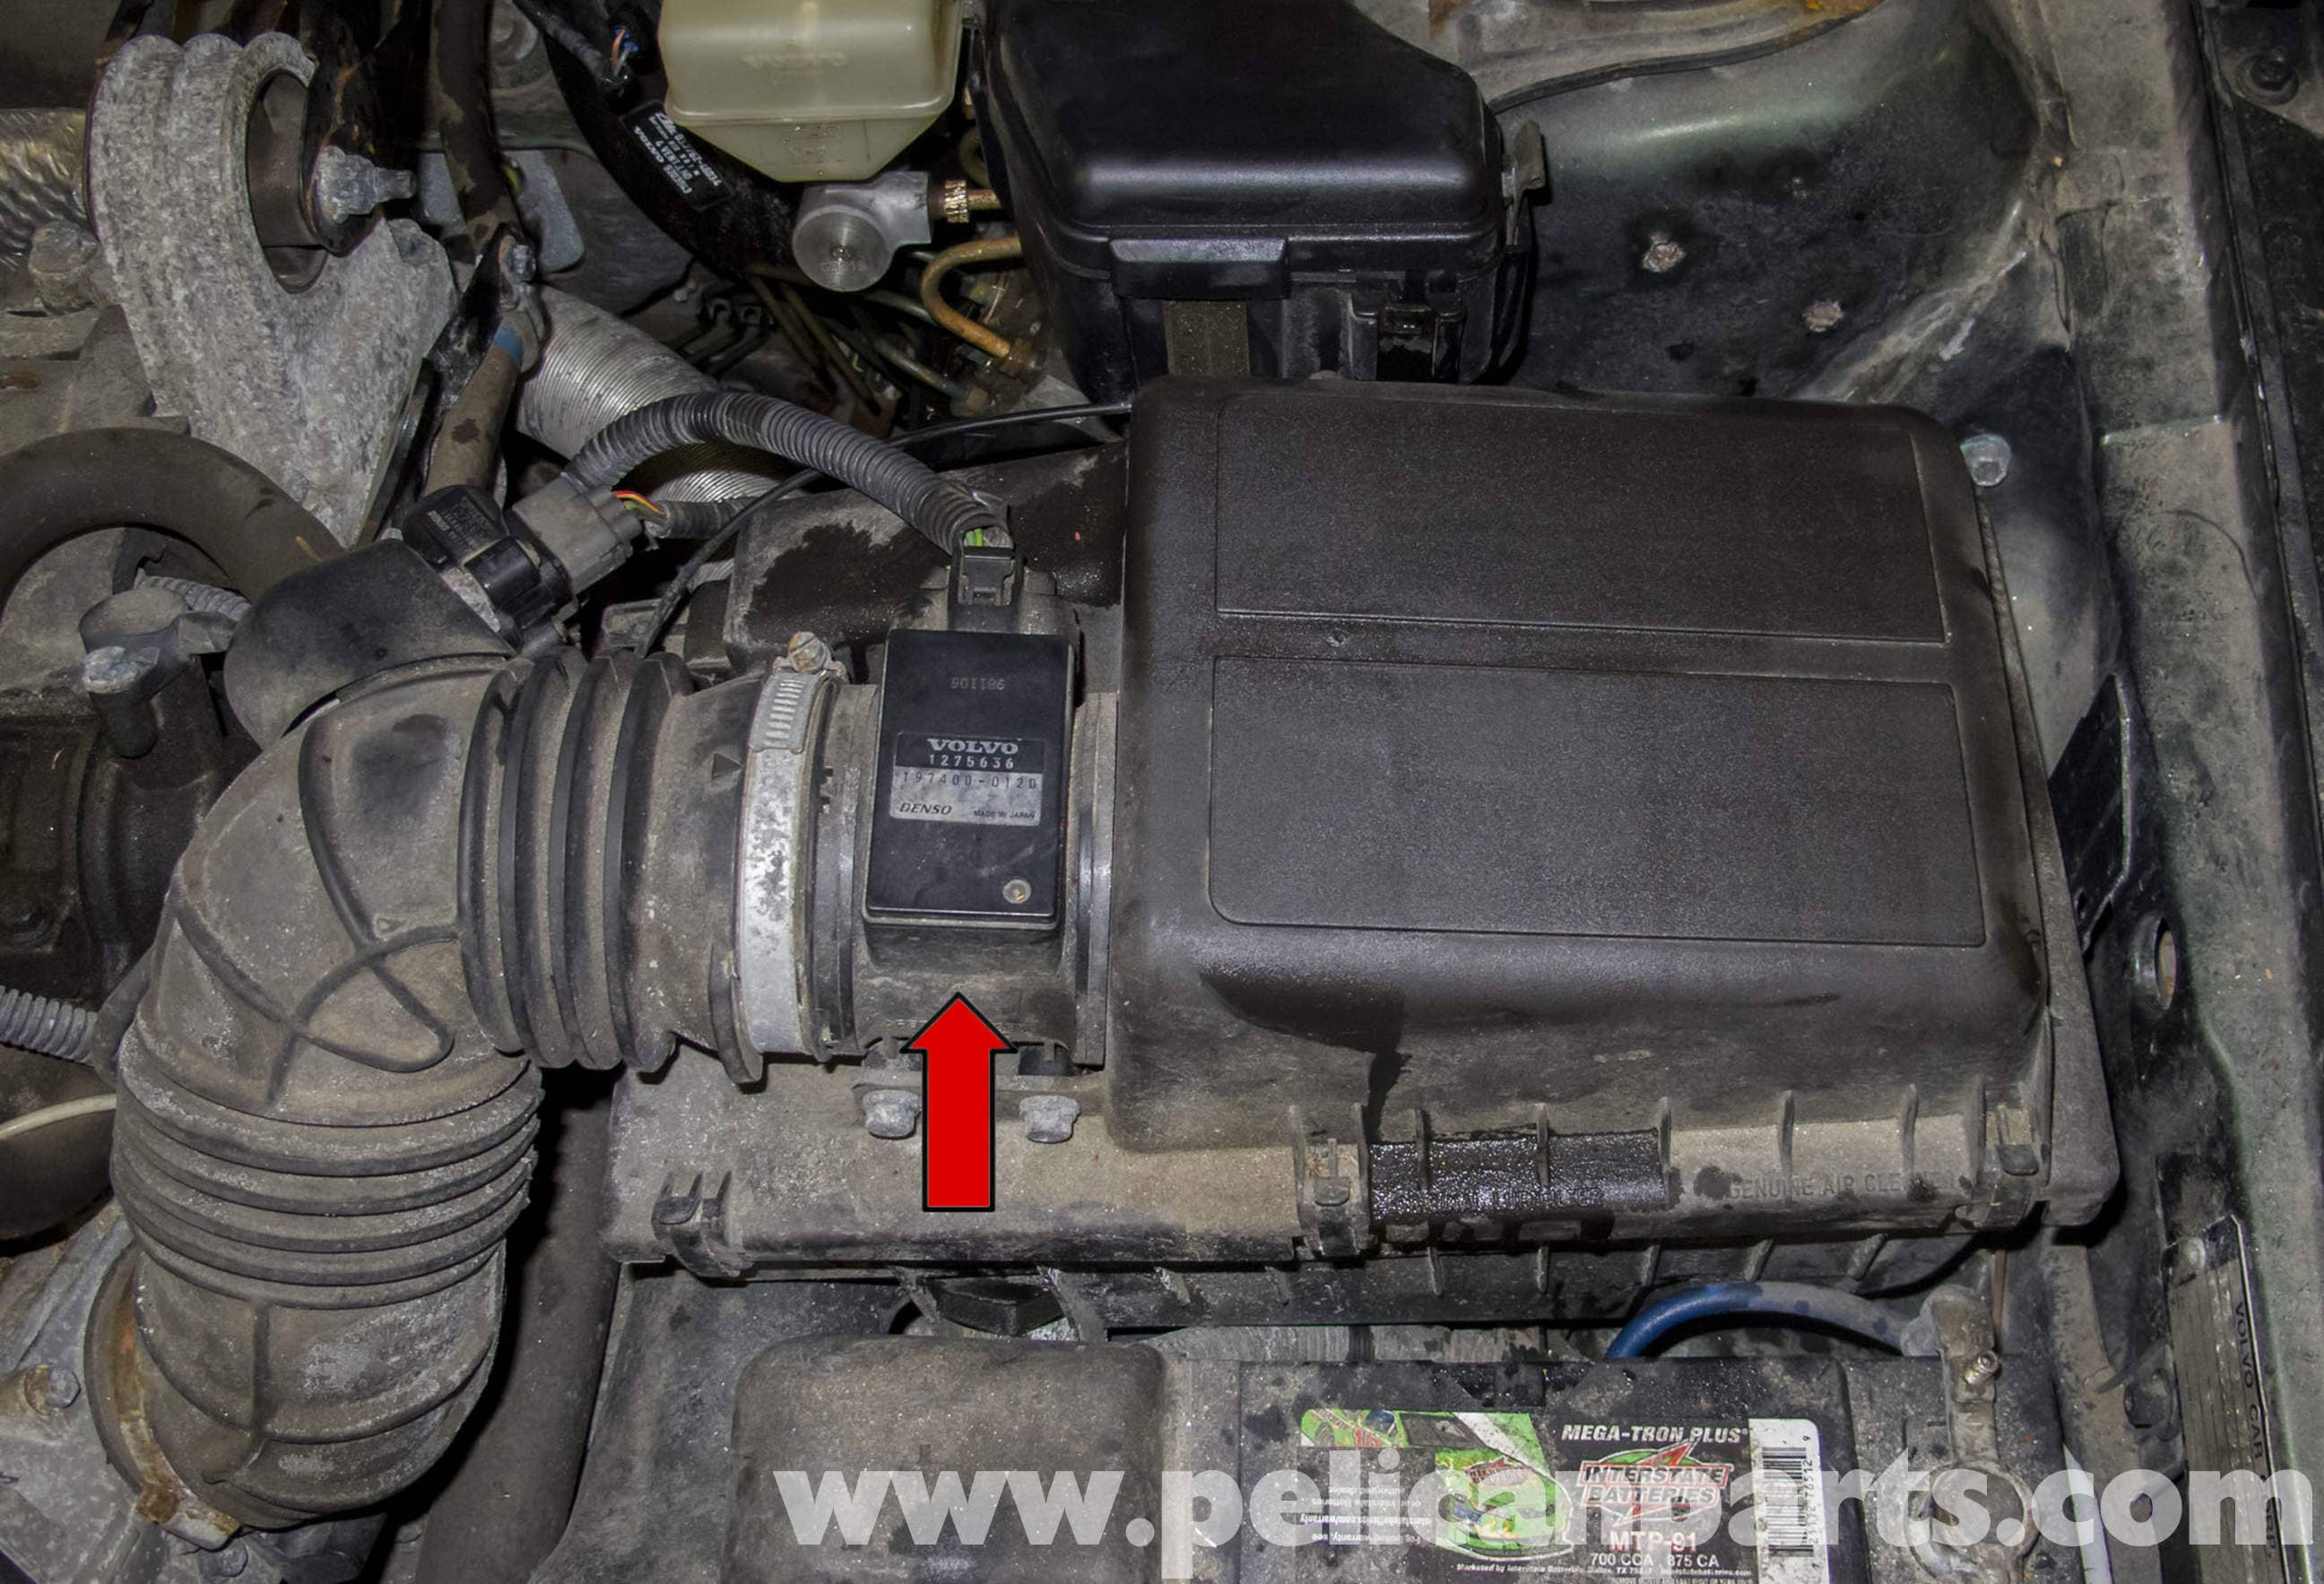 Volvo V70 Engine Management Systems 1998 2007 Pelican Parts Diy Maintenance Article